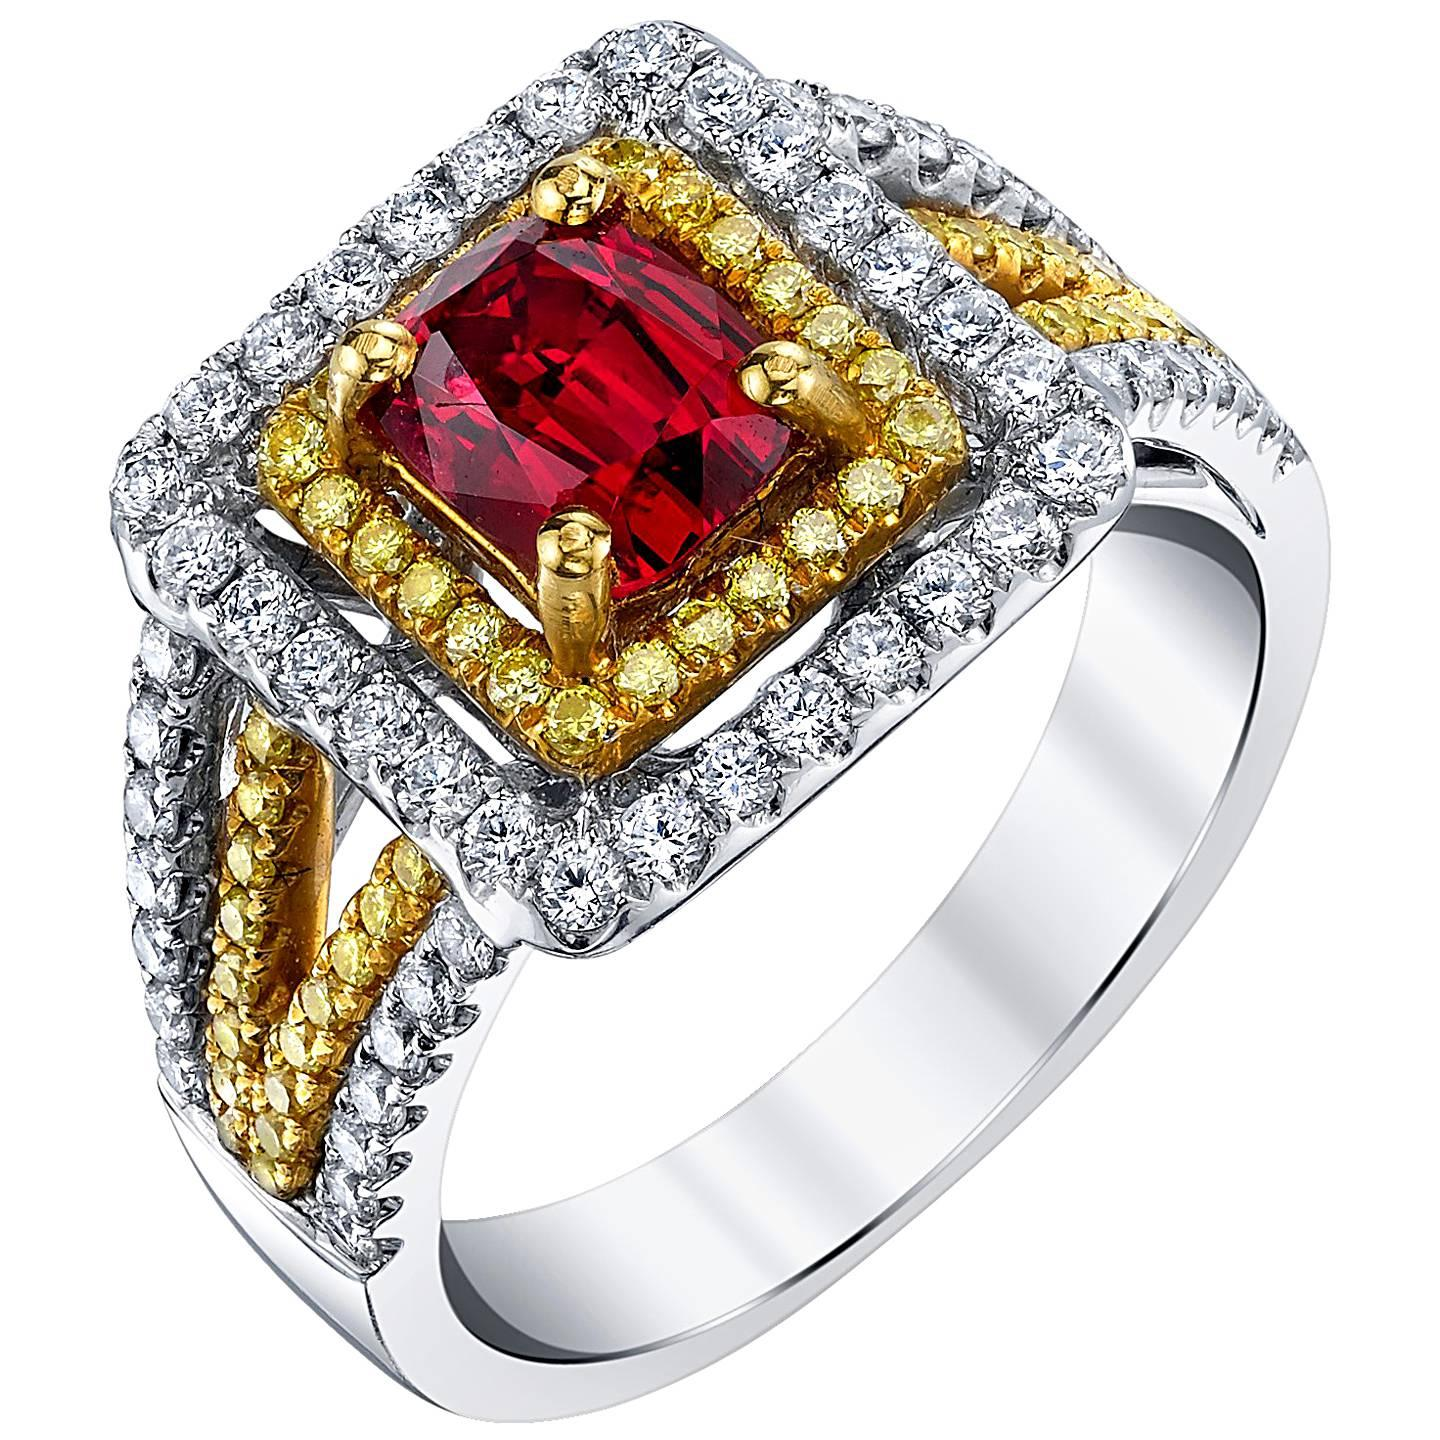 1.23 Carat Burmese Red Spinel Diamond 18k Gold Yellow and White Square Halo Ring